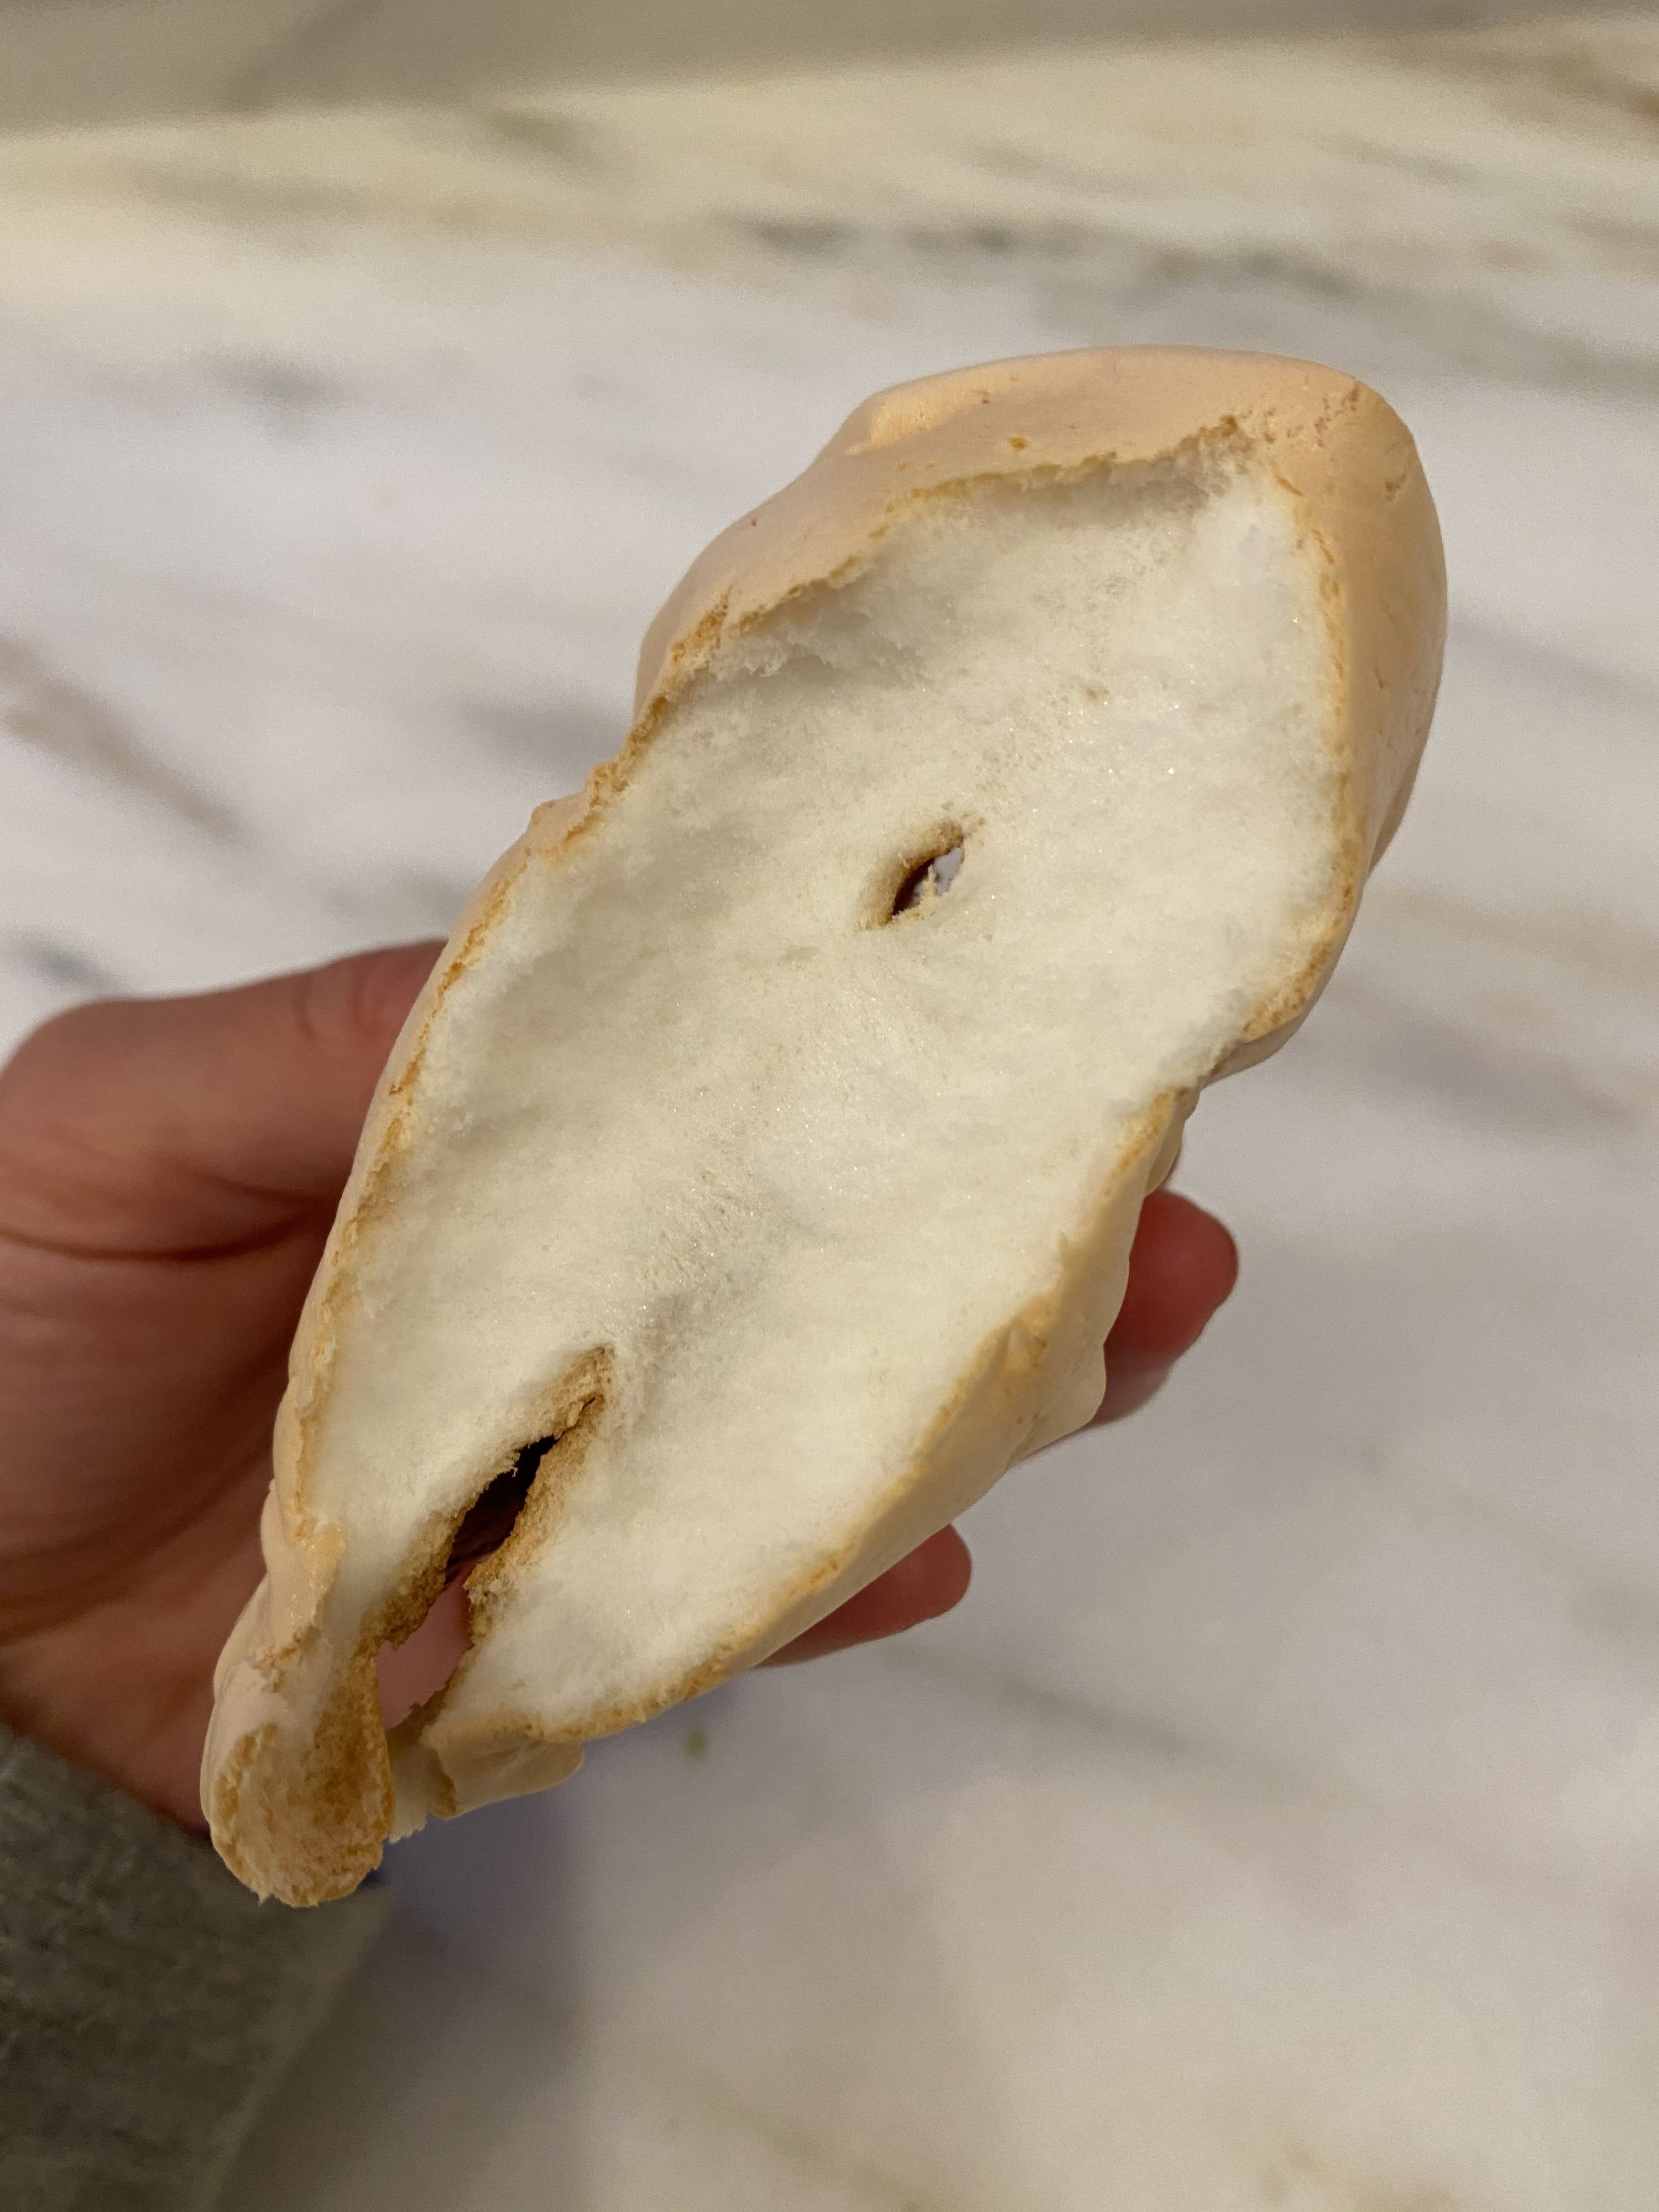 My hands holding a piece of cloud bread that is split in half, revealing a white and fluffy interior.